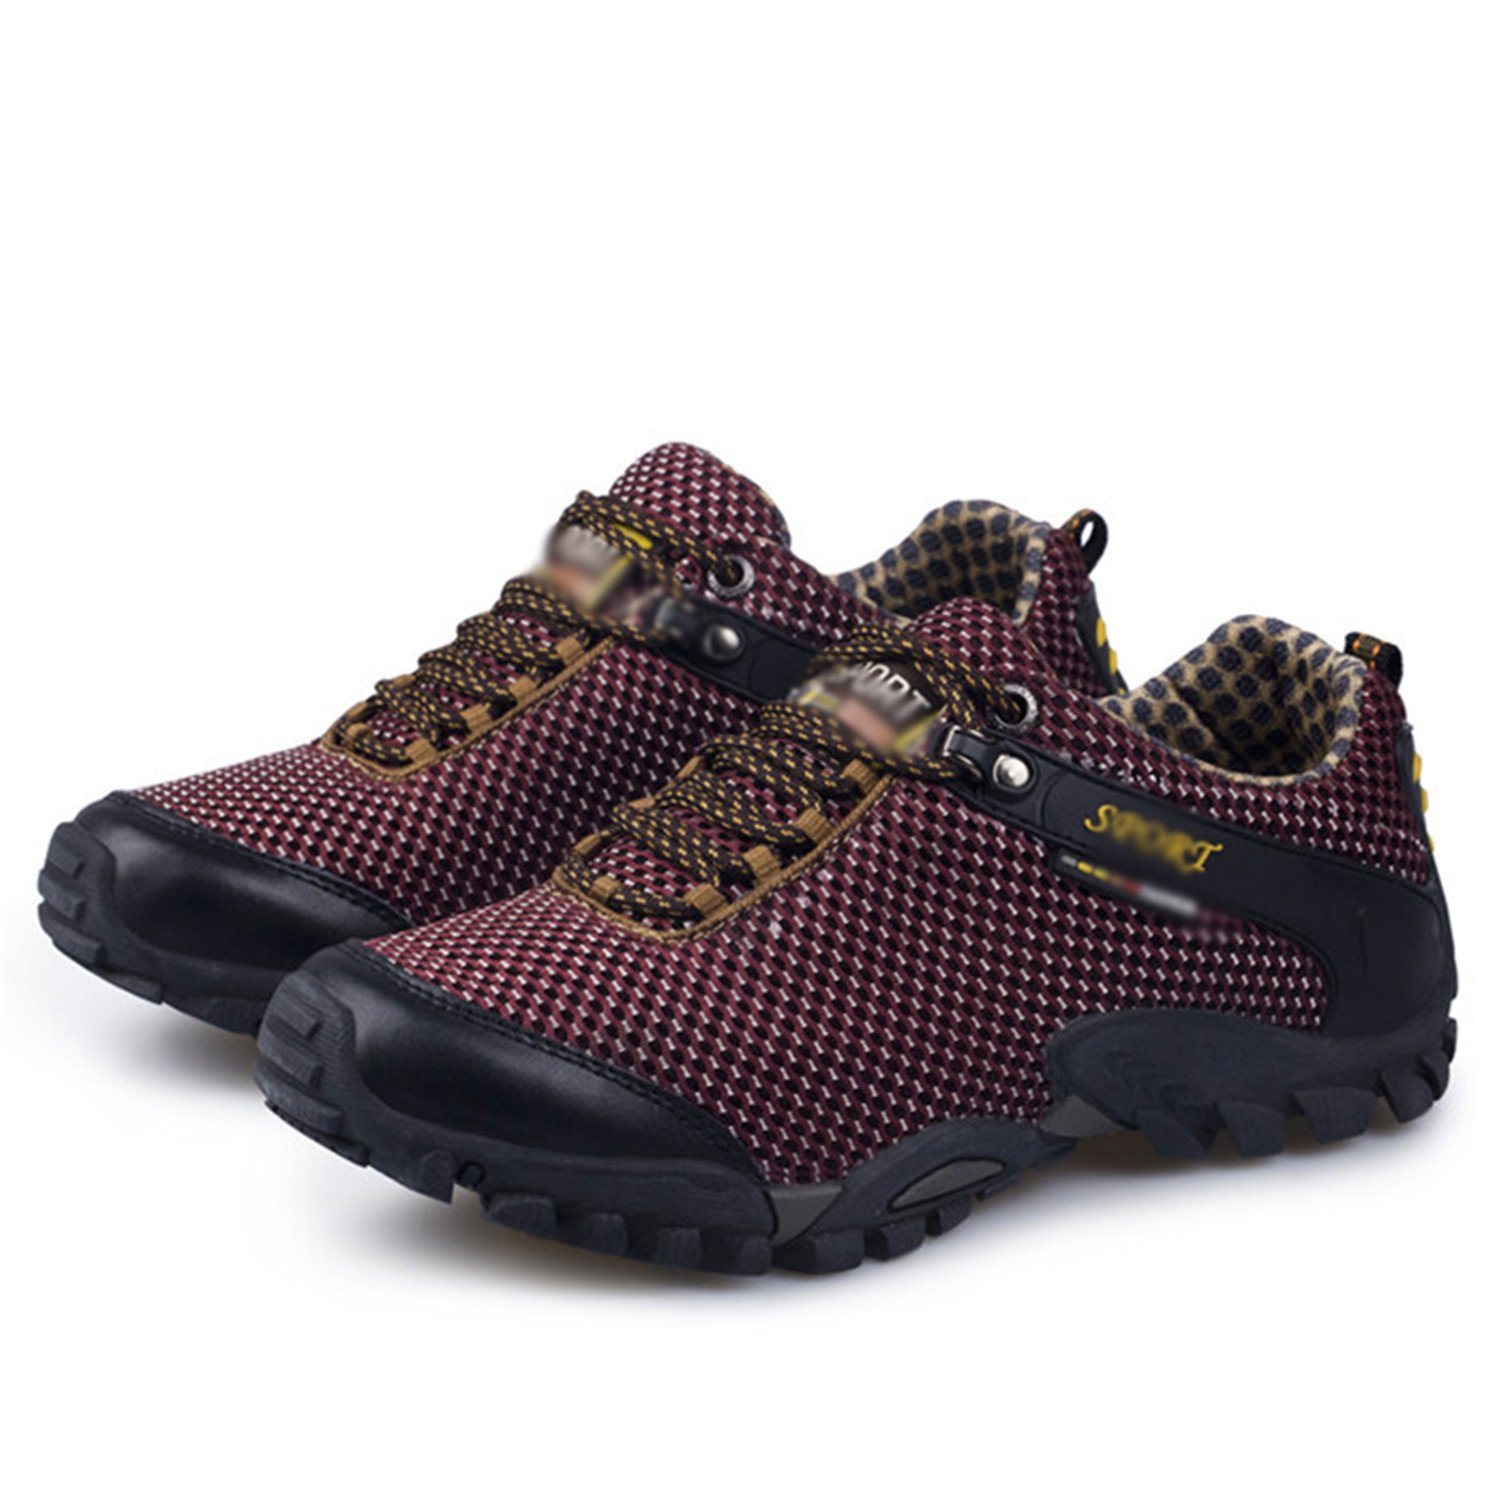 Amazon.com | Smakke Men Hiking Shoes Breathable Mesh Outdoor Climbing Shoes Sneakers Treking Camping Shoes | Hiking Shoes